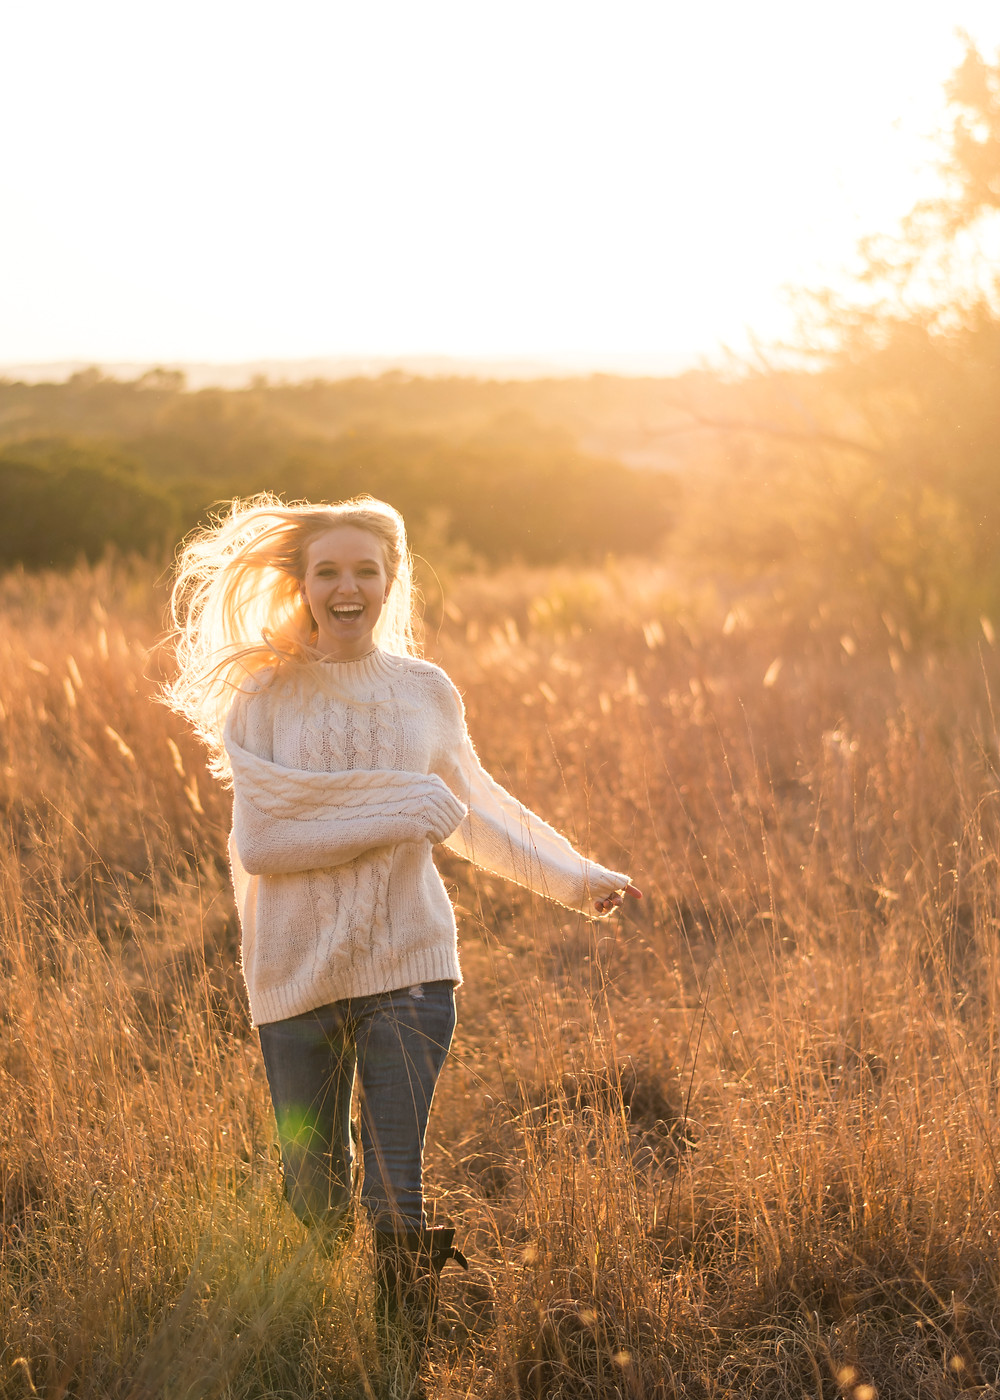 girl running through a field at sunset with light shining through her hair